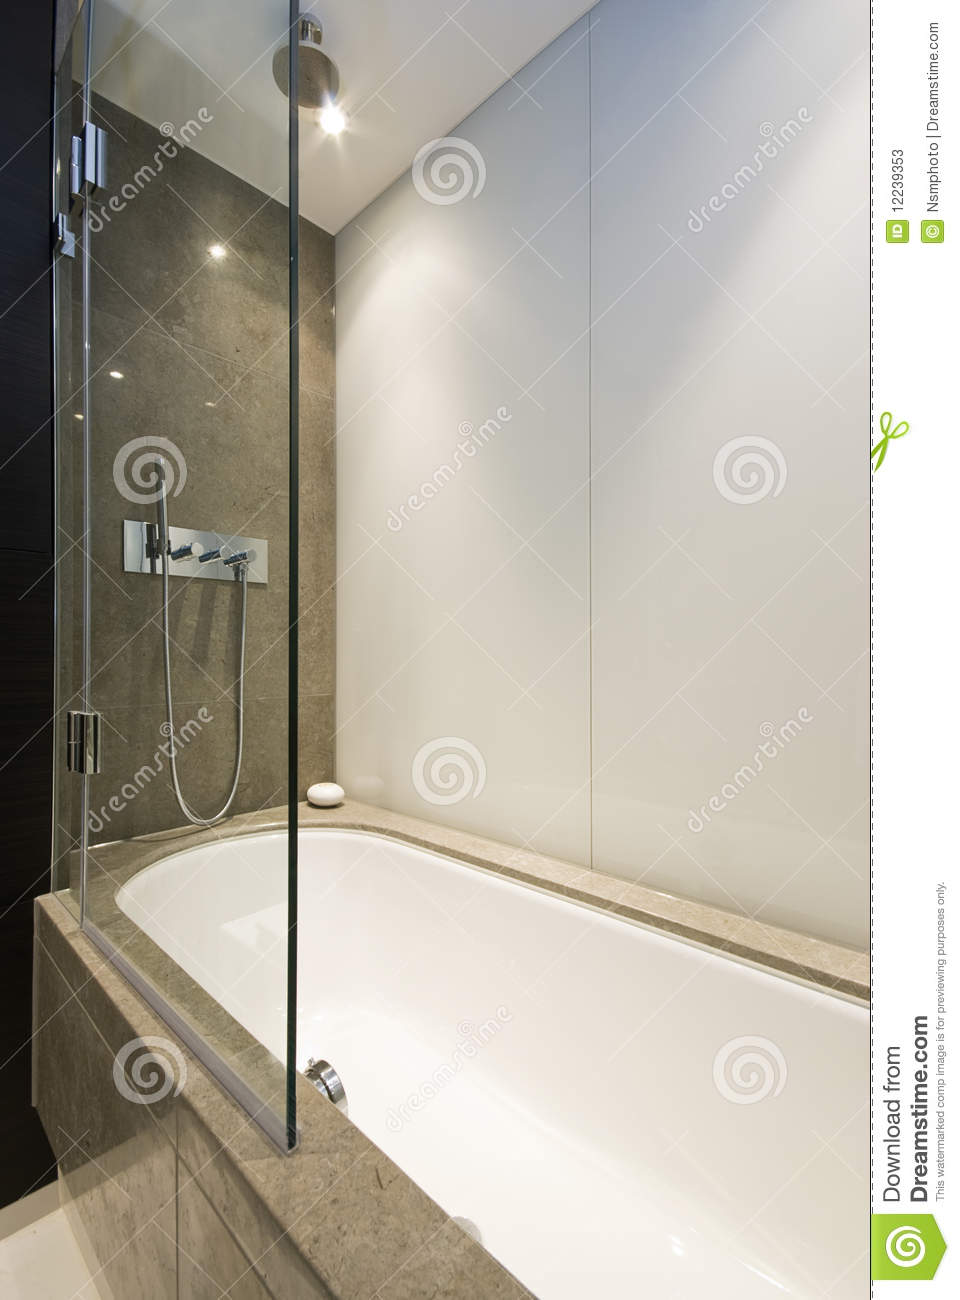 Marble Bath Tub With Slim Line Shower Attachment Stock